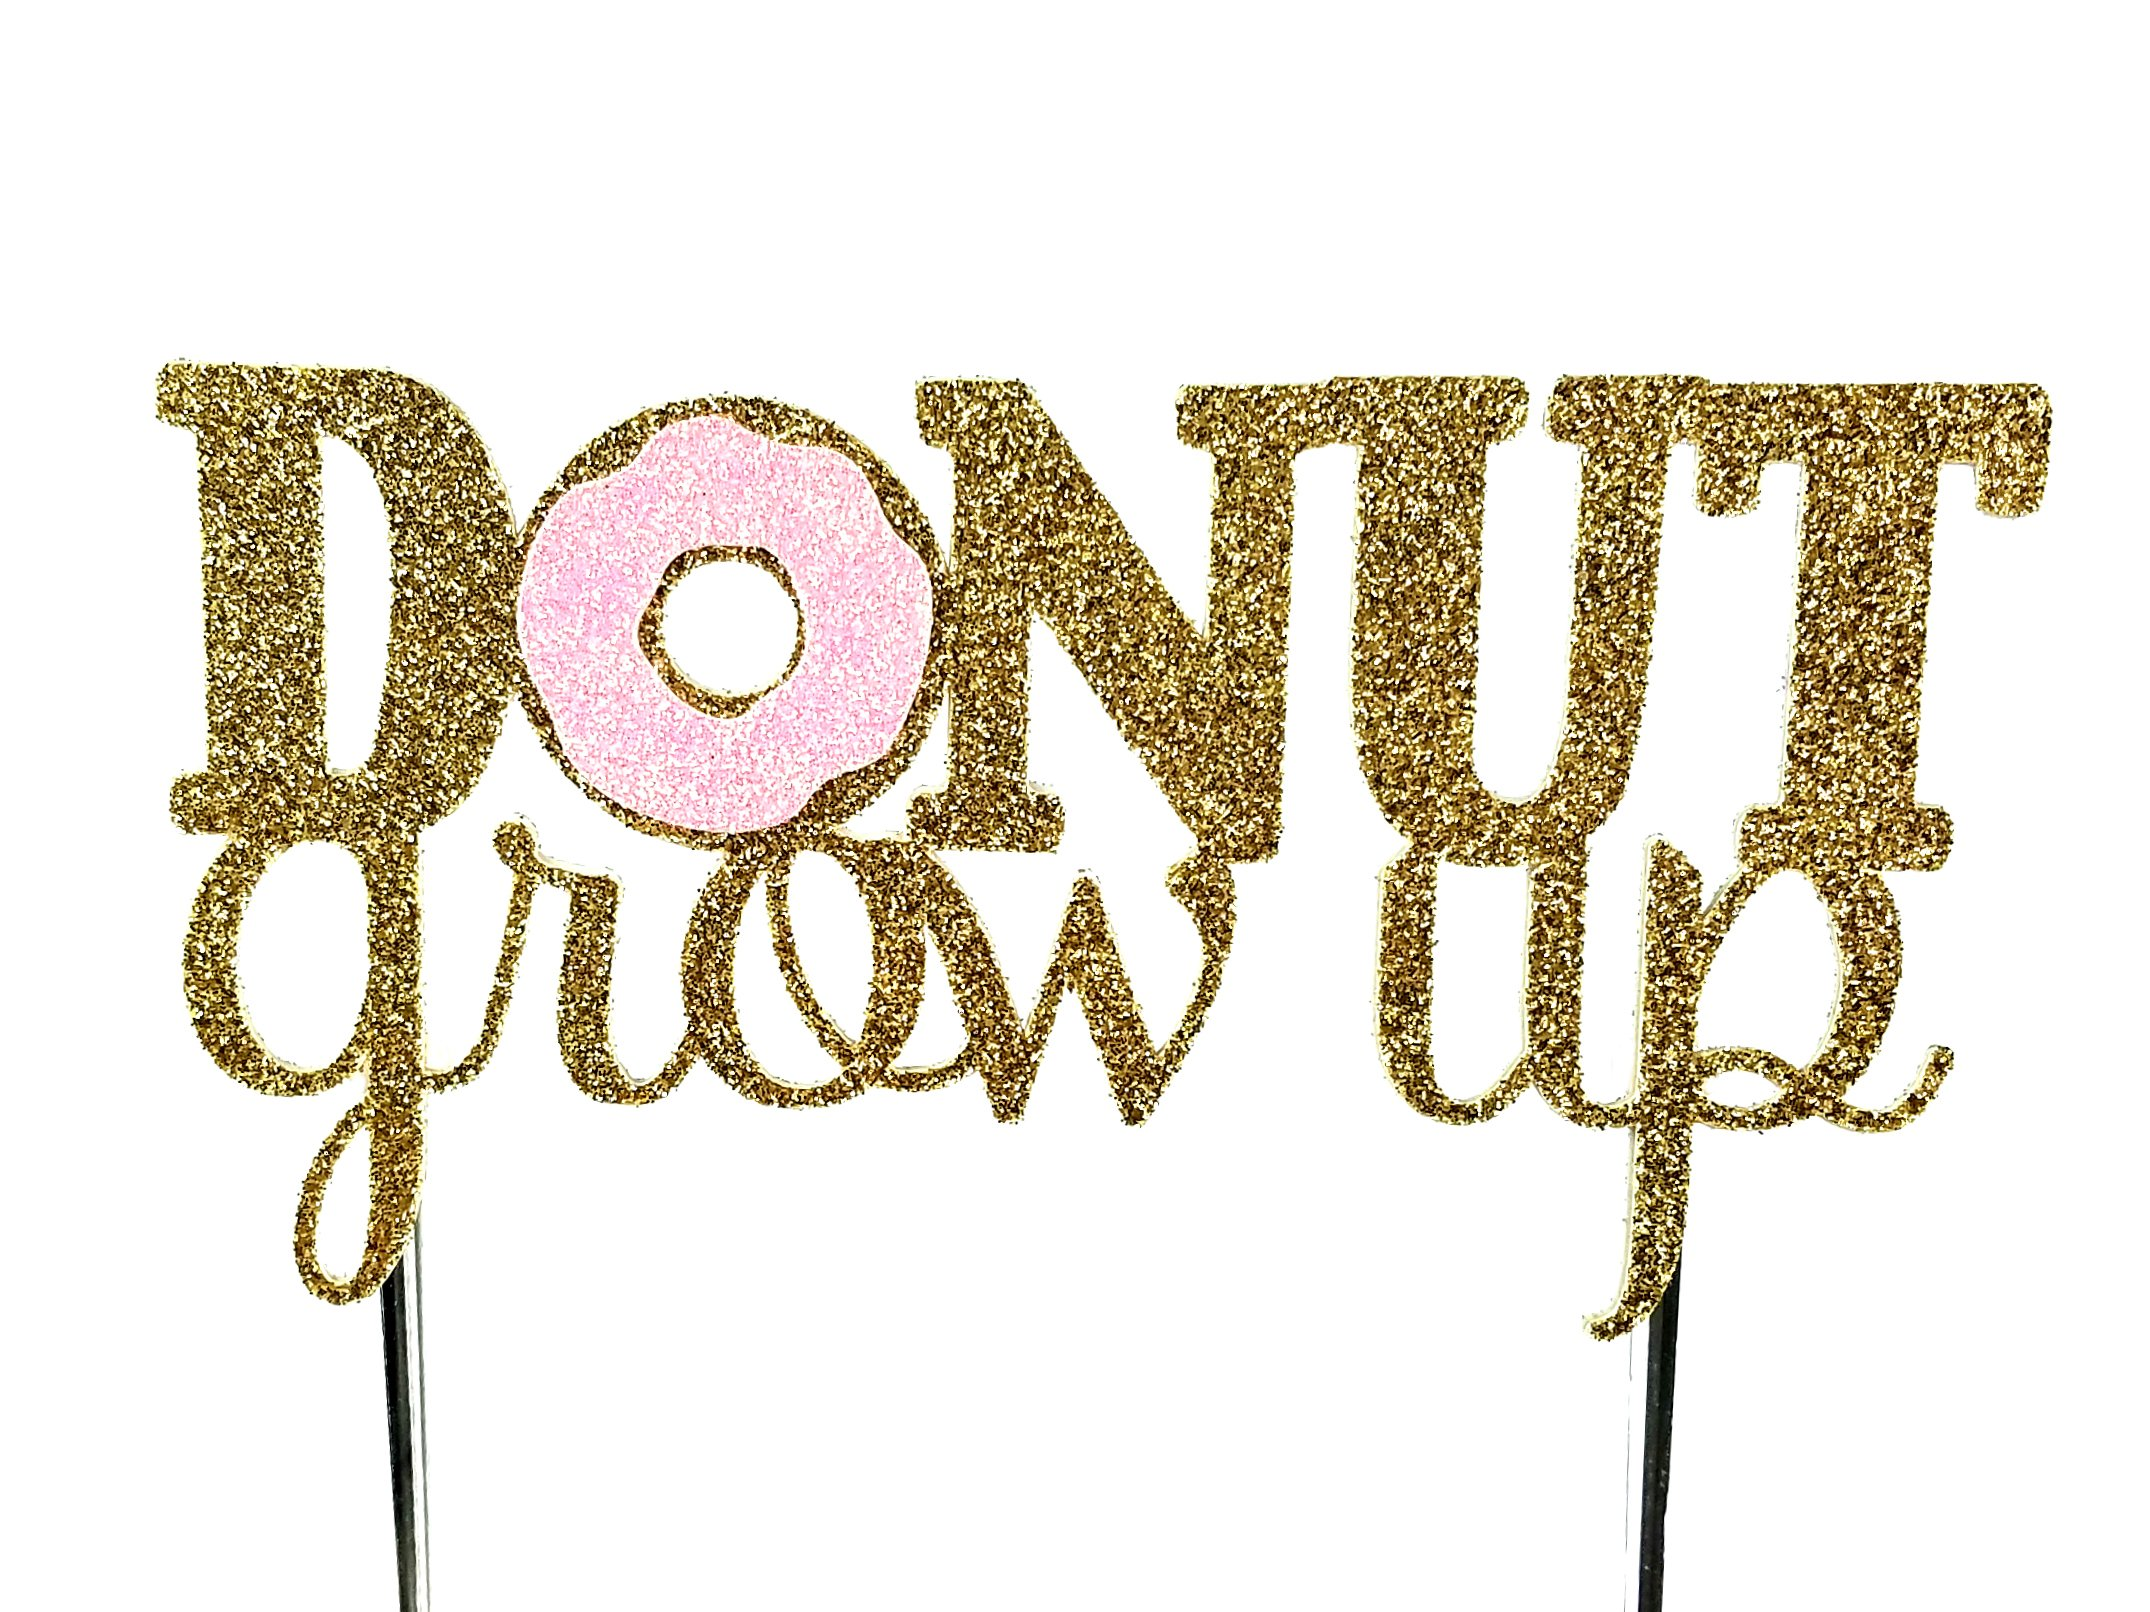 Handmade Donut Birthday Cake Topper Decoration - donut grow up - Made in USA with Double Sided Gold Pink Glitter Stock (Pink)